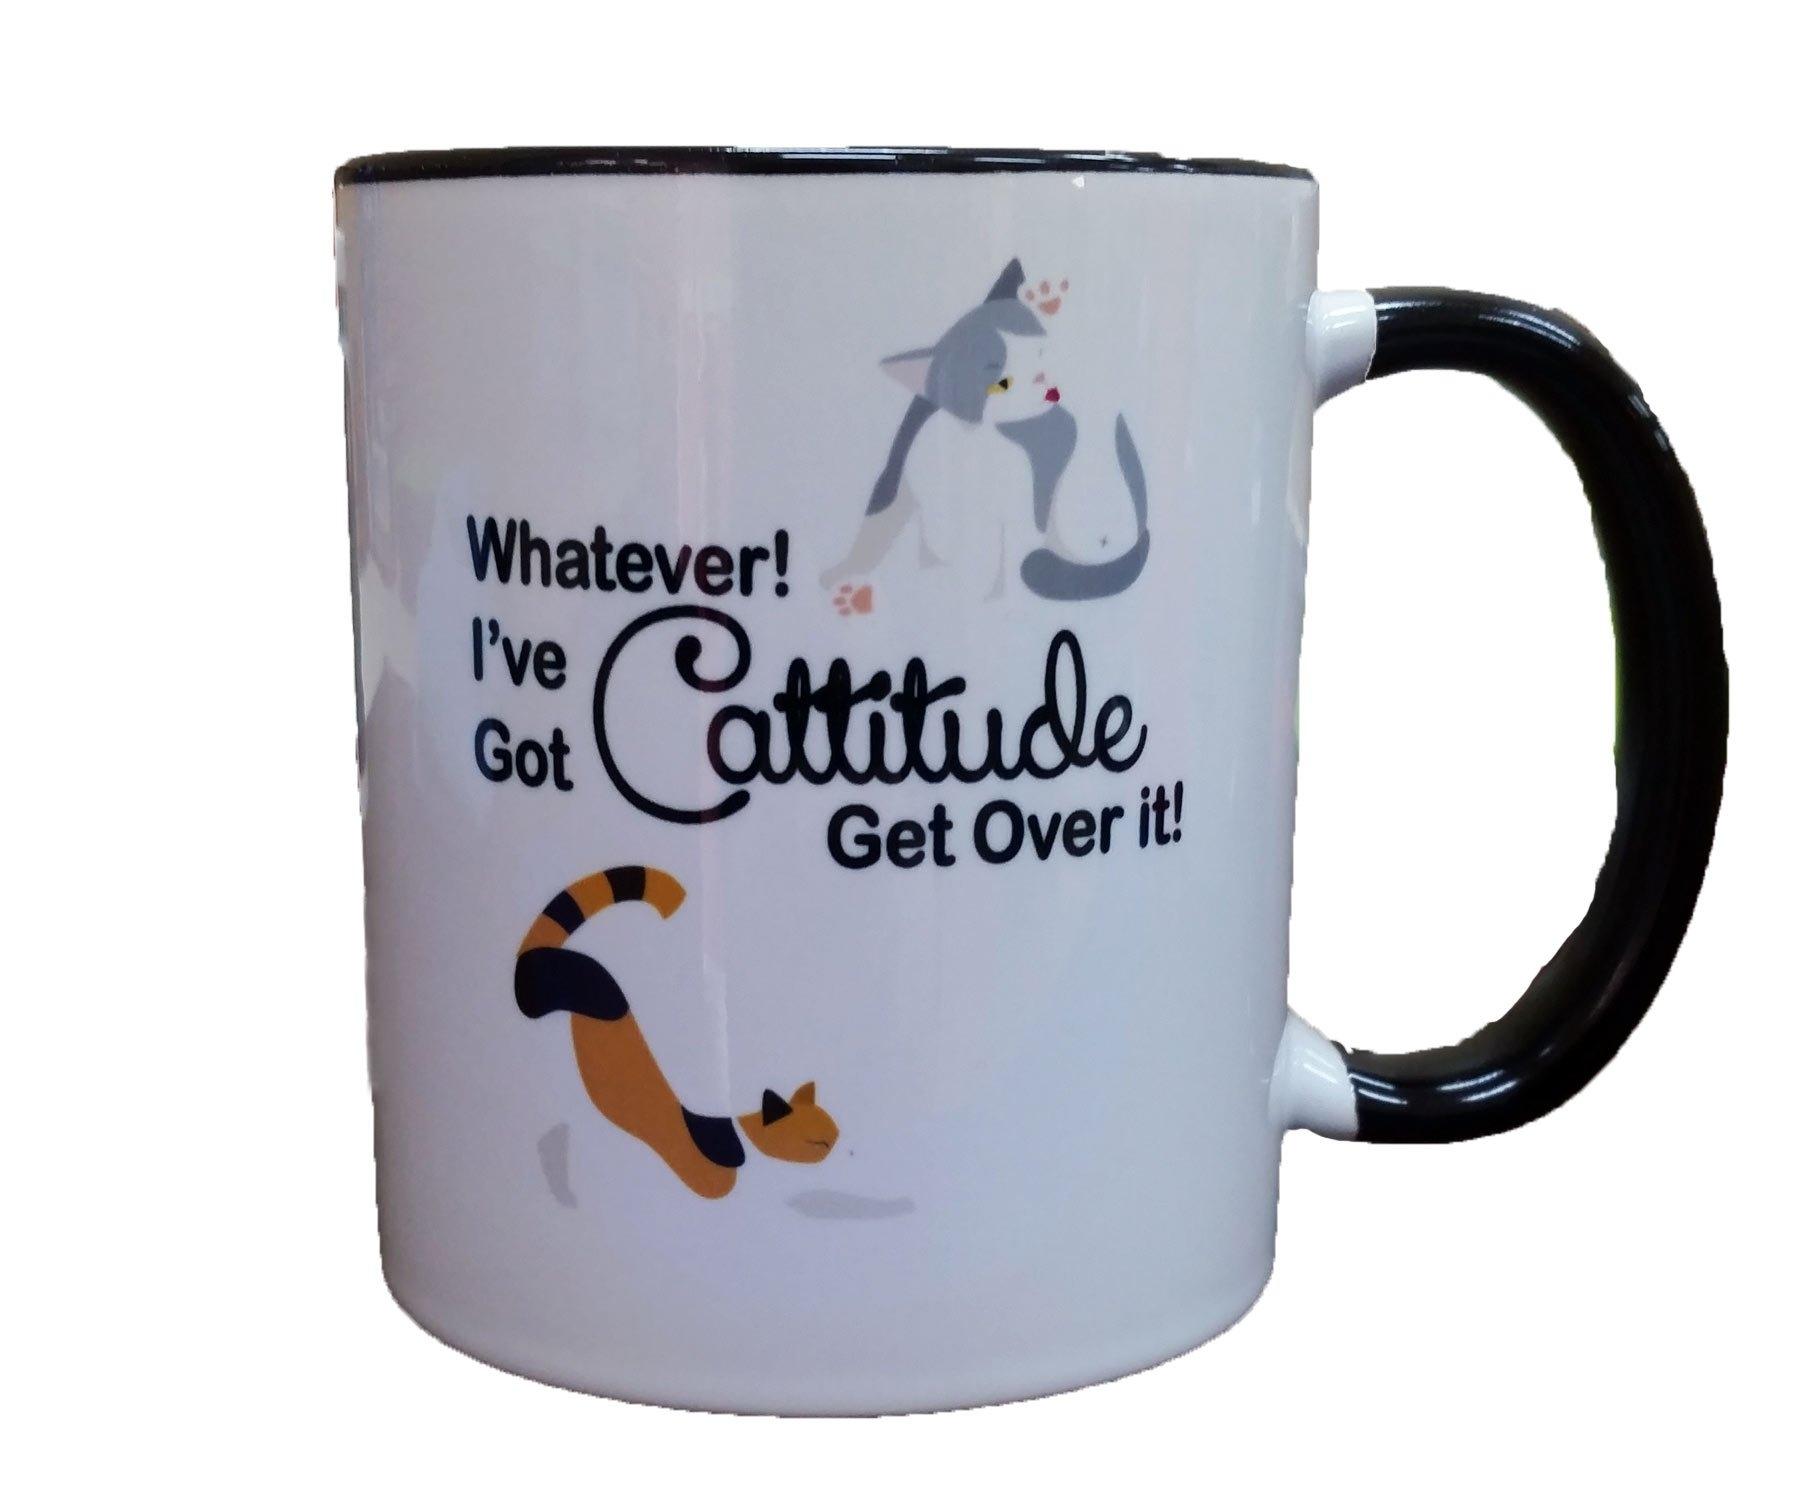 Whatever! I've Got Cattitude Get Over It! Coffee or Tea 11oz Mug - Perfect Gift for Cat and Animal Lovers by Dark Spark Decals (Image #2)